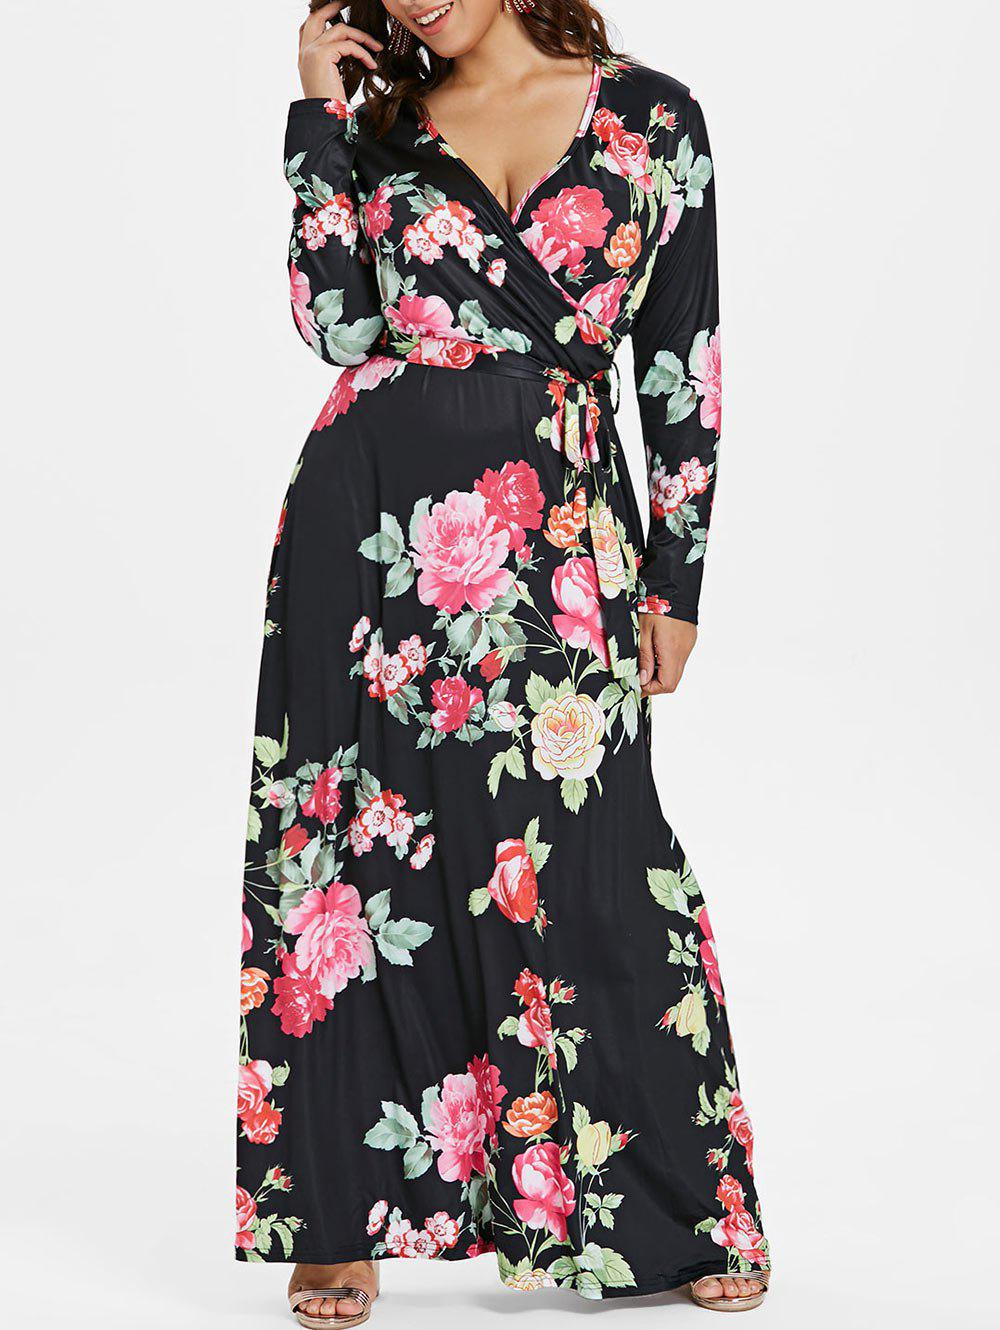 Chic Surplice Neck Plus Size Floral Maxi Dress